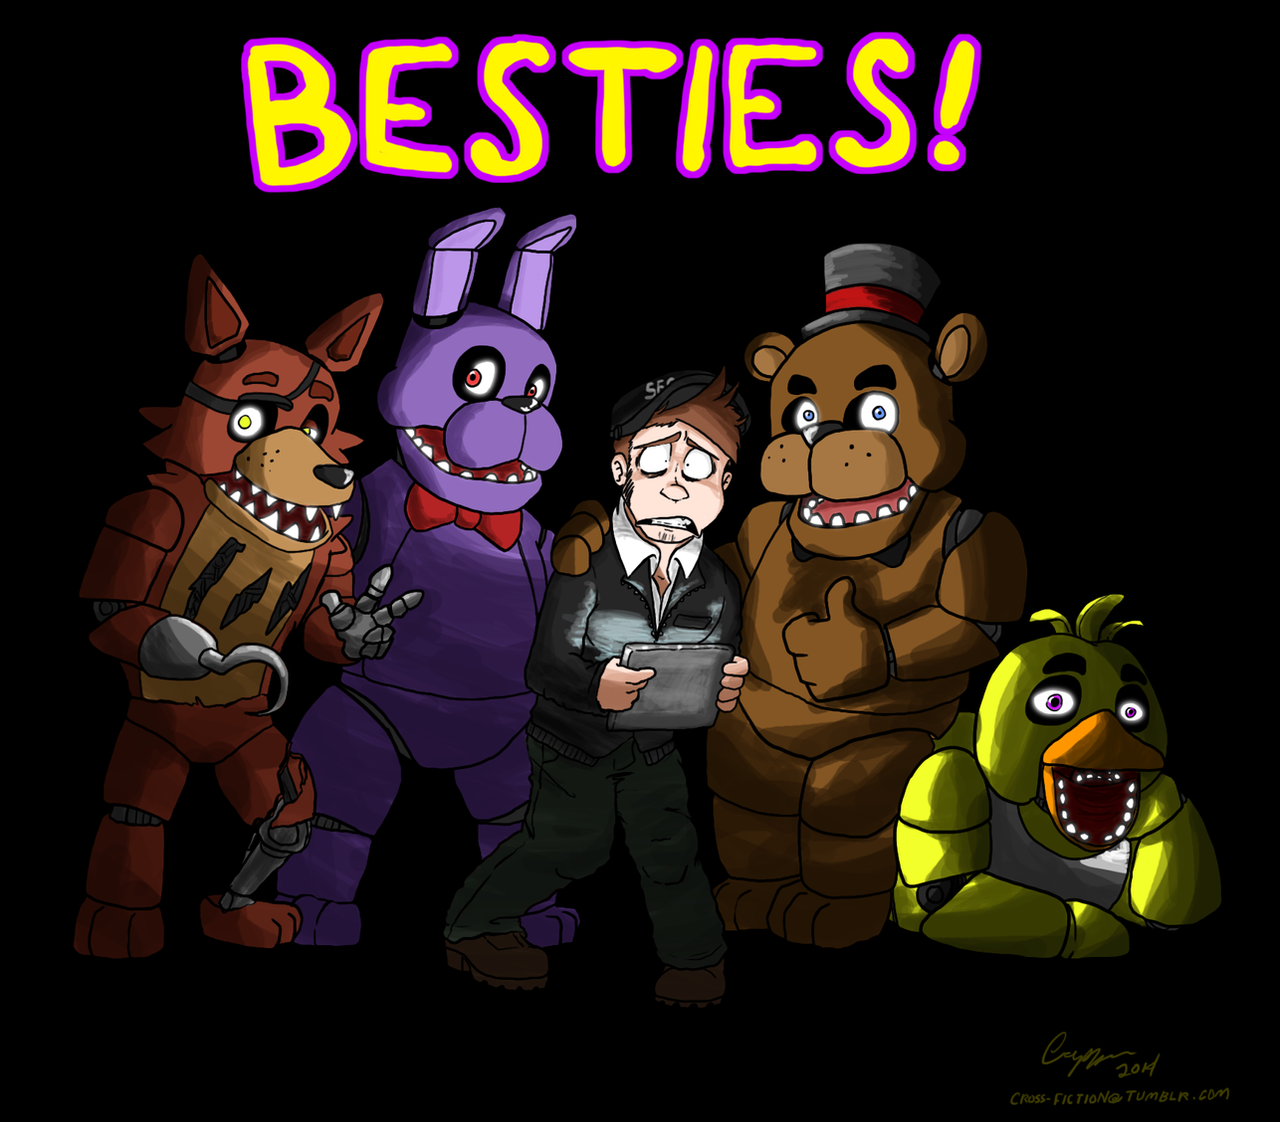 Play five nights at freddys 2 hacked a free online game